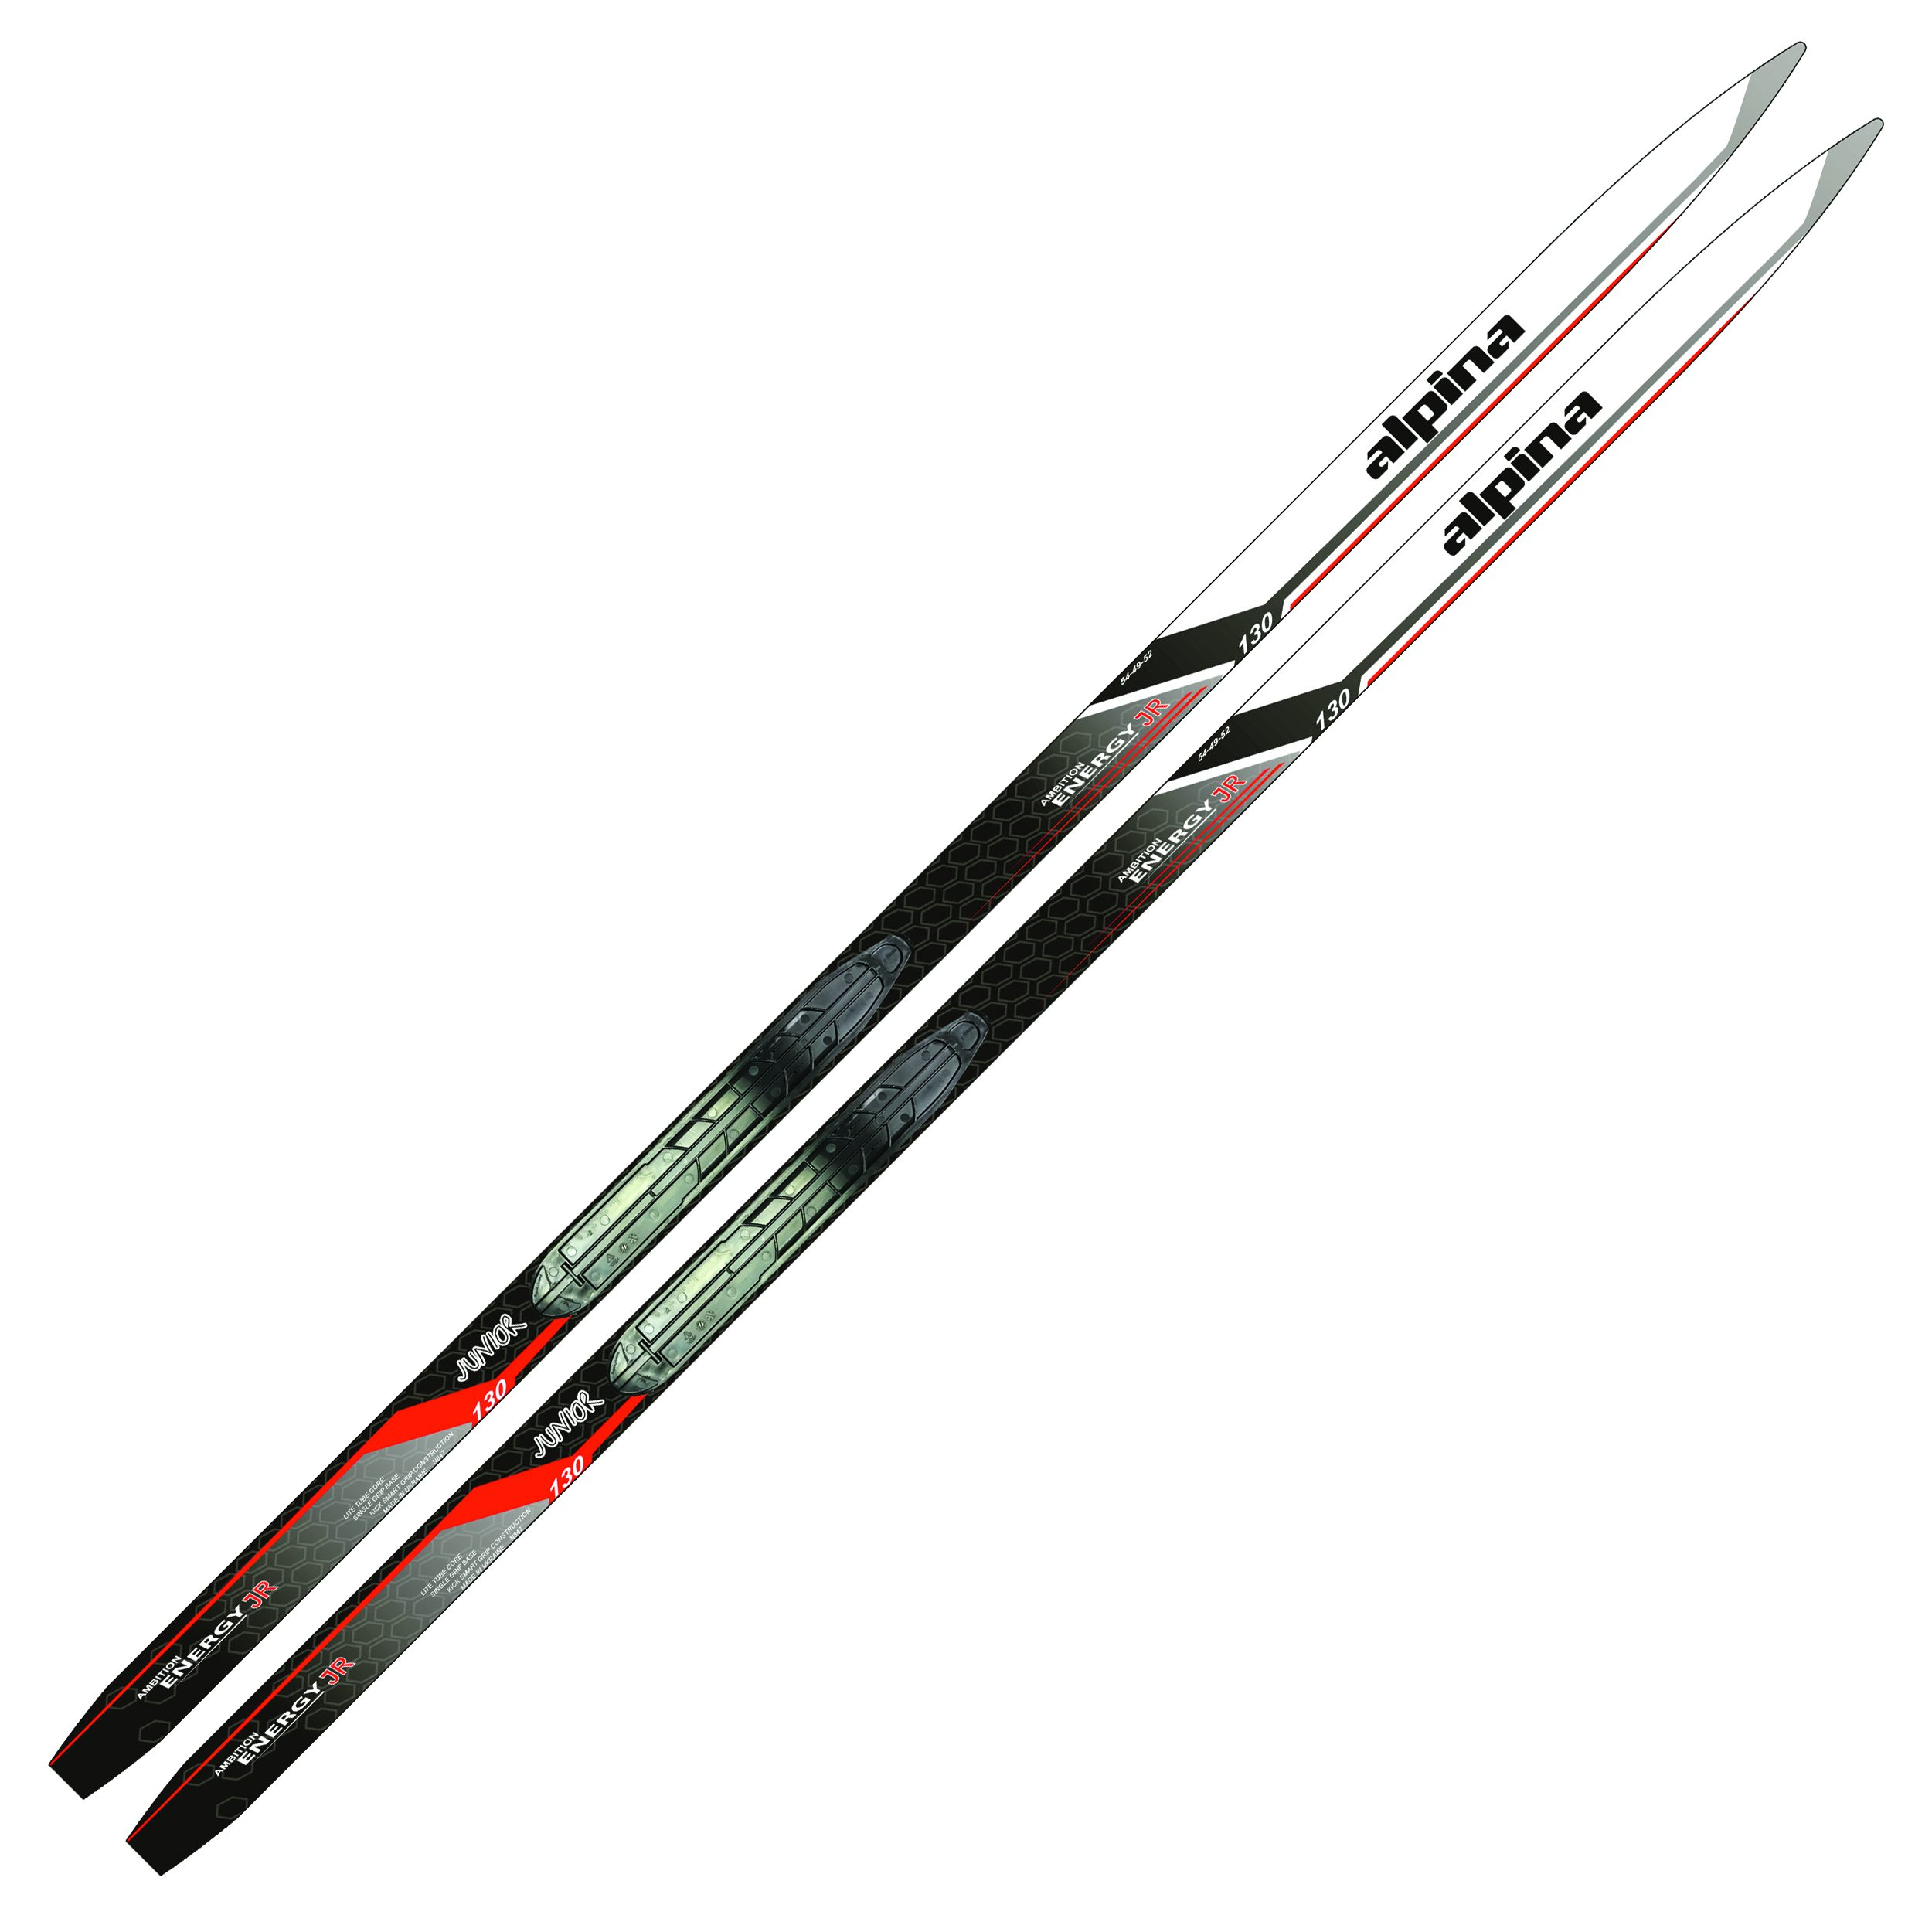 Alpina Sports Youth Energy Junior Cross-Country Nordic Touring Skis with Rottefella NIS Binding Mounting Plates, 130cm by Alpina